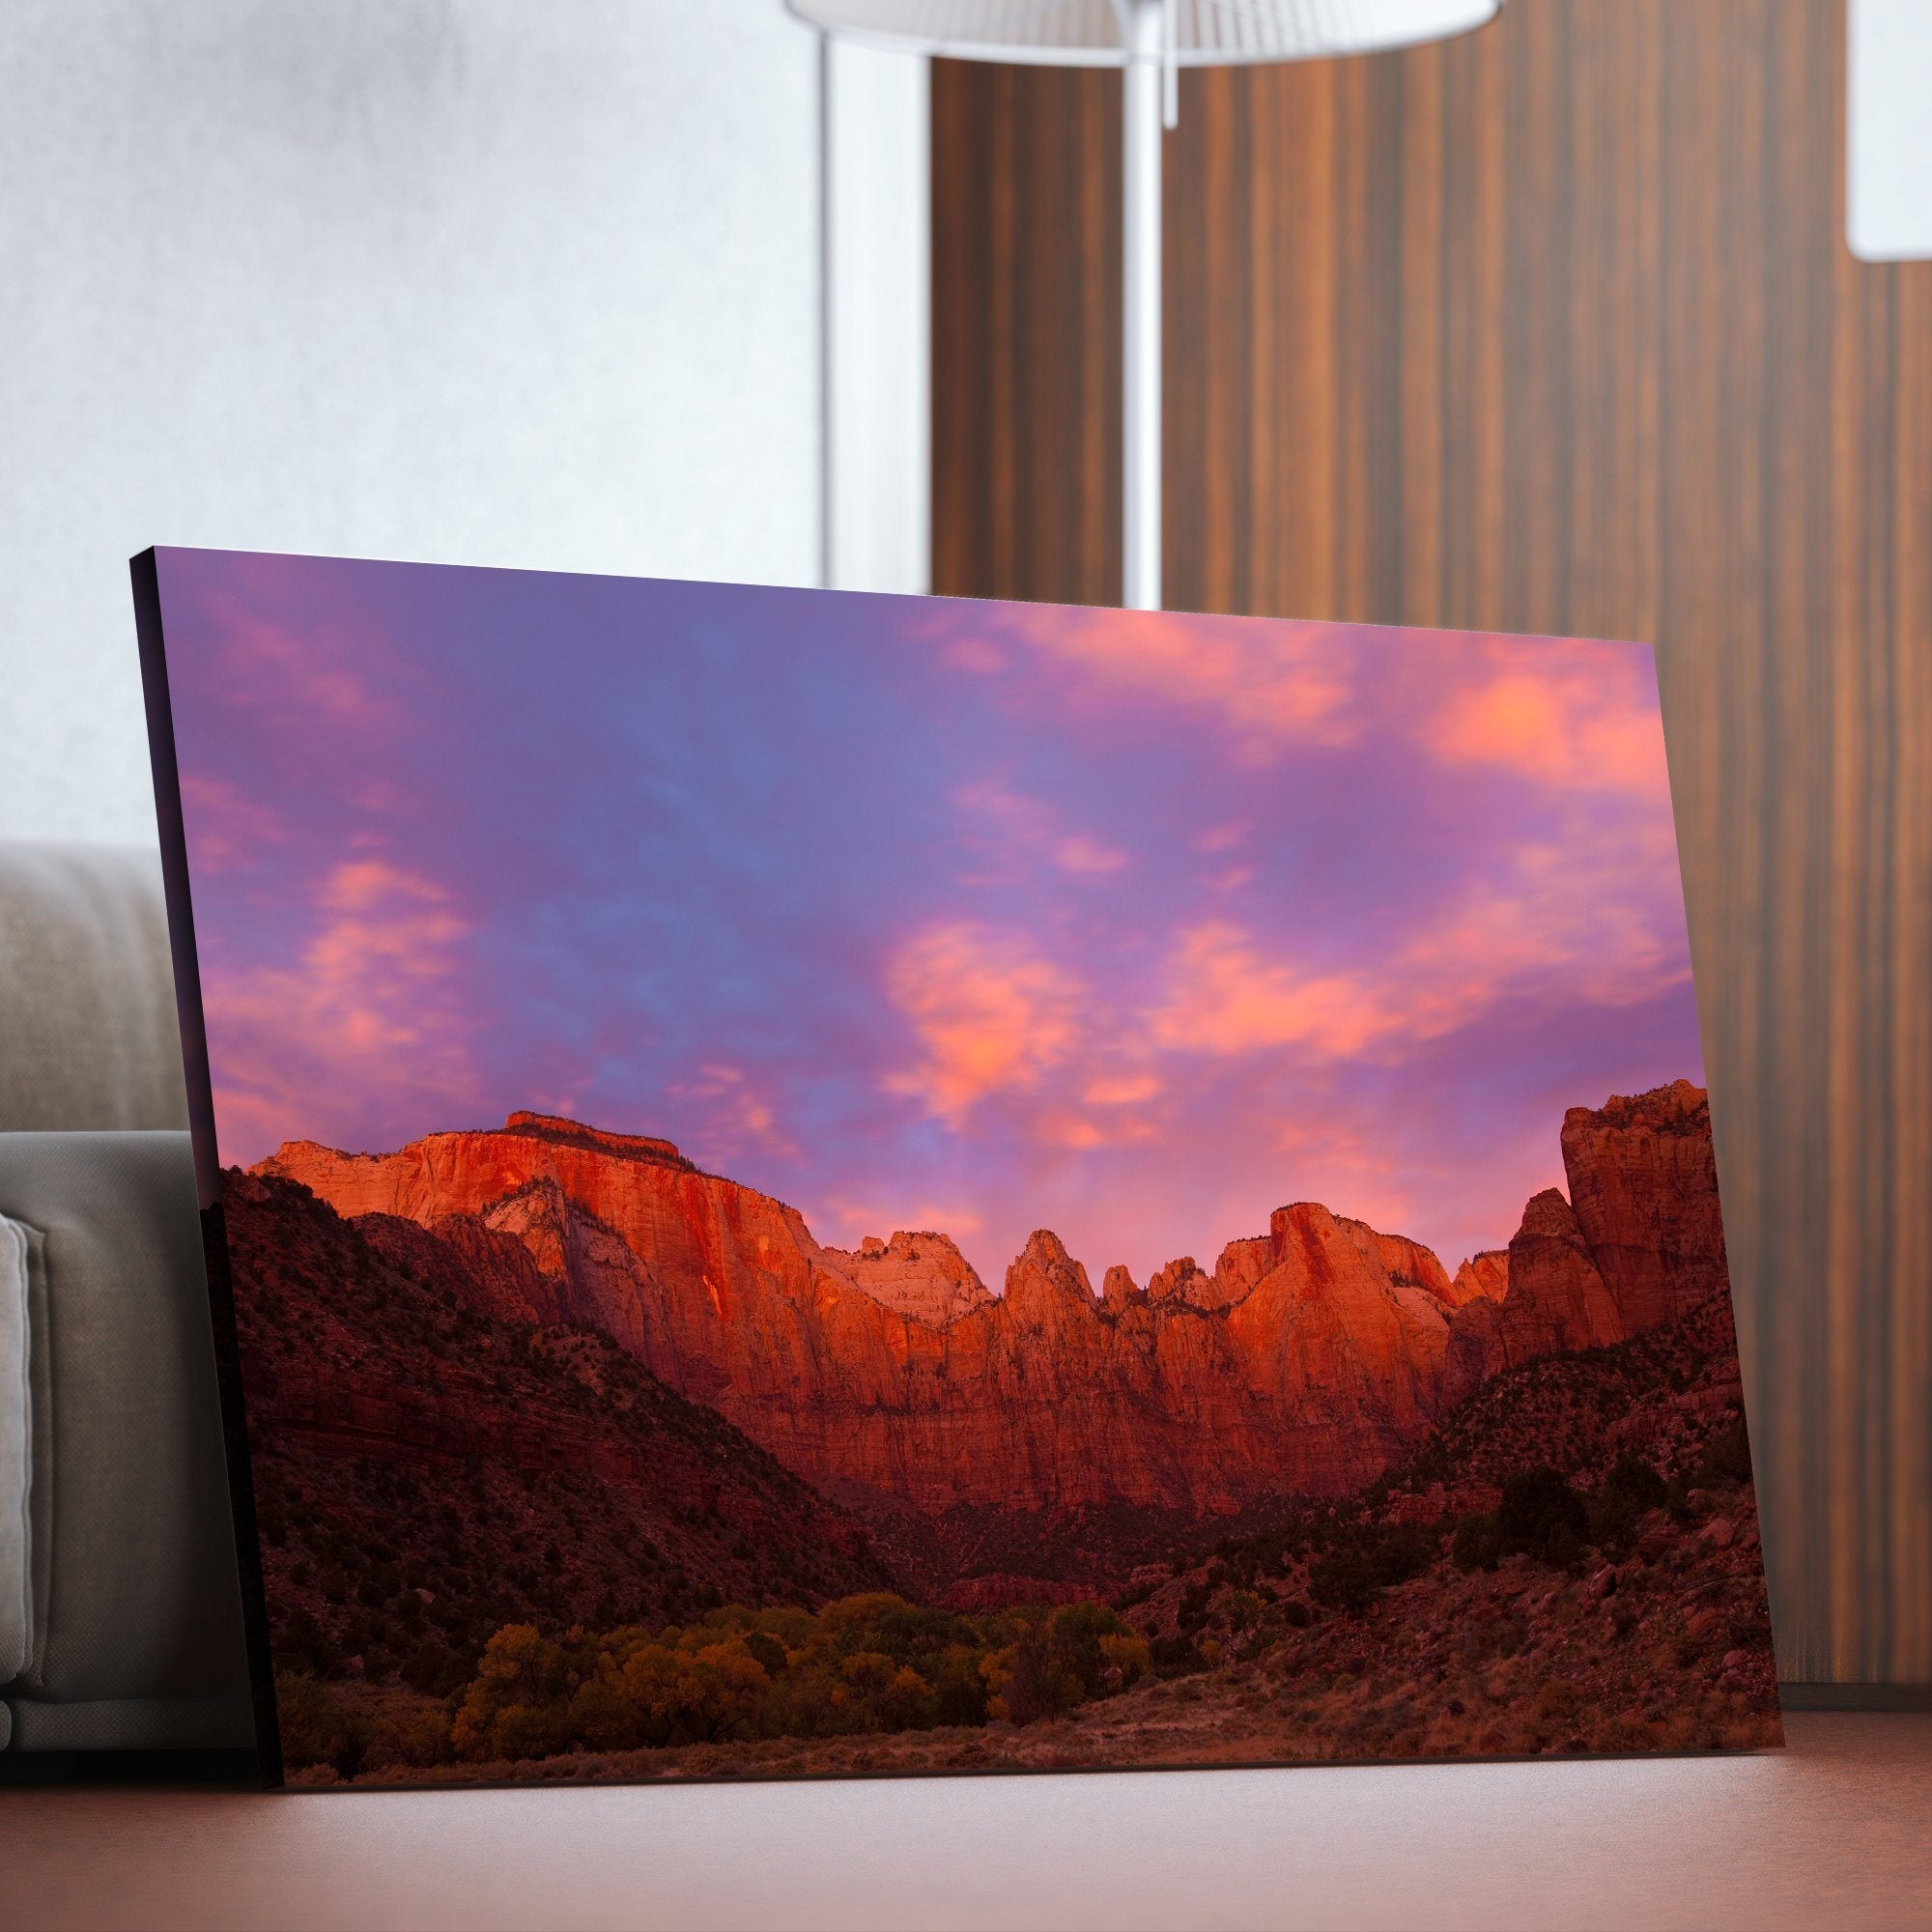 Towers of Virgin - Zion Canyon National Park living room wall art